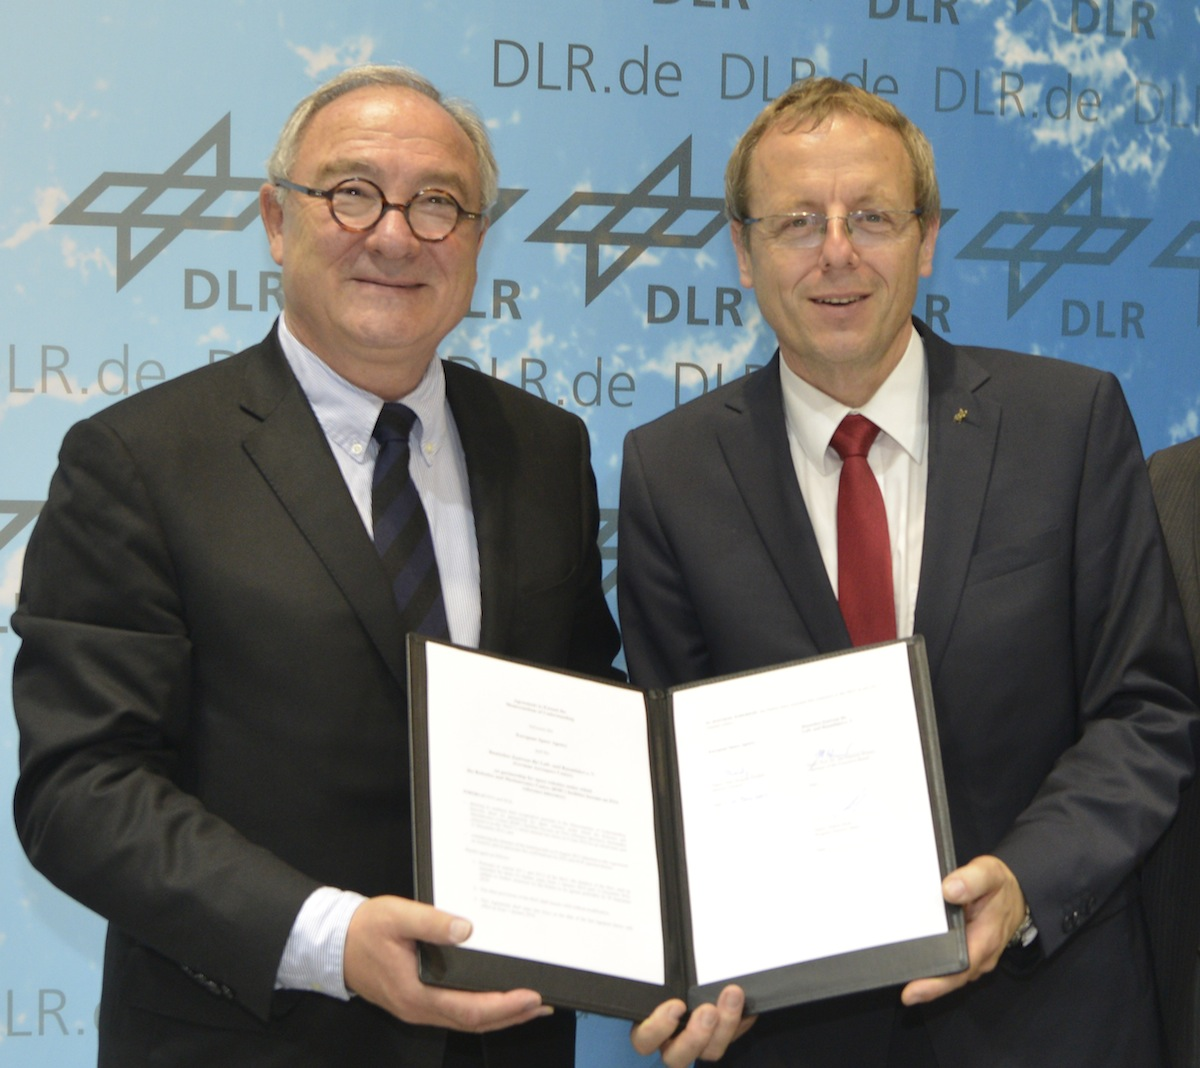 Jean-Jacques Dordain (left) will hand over the top job at ESA to Johann-Dietrich Woerner (right). Credit: ESA–M. Pedoussaut, 2014